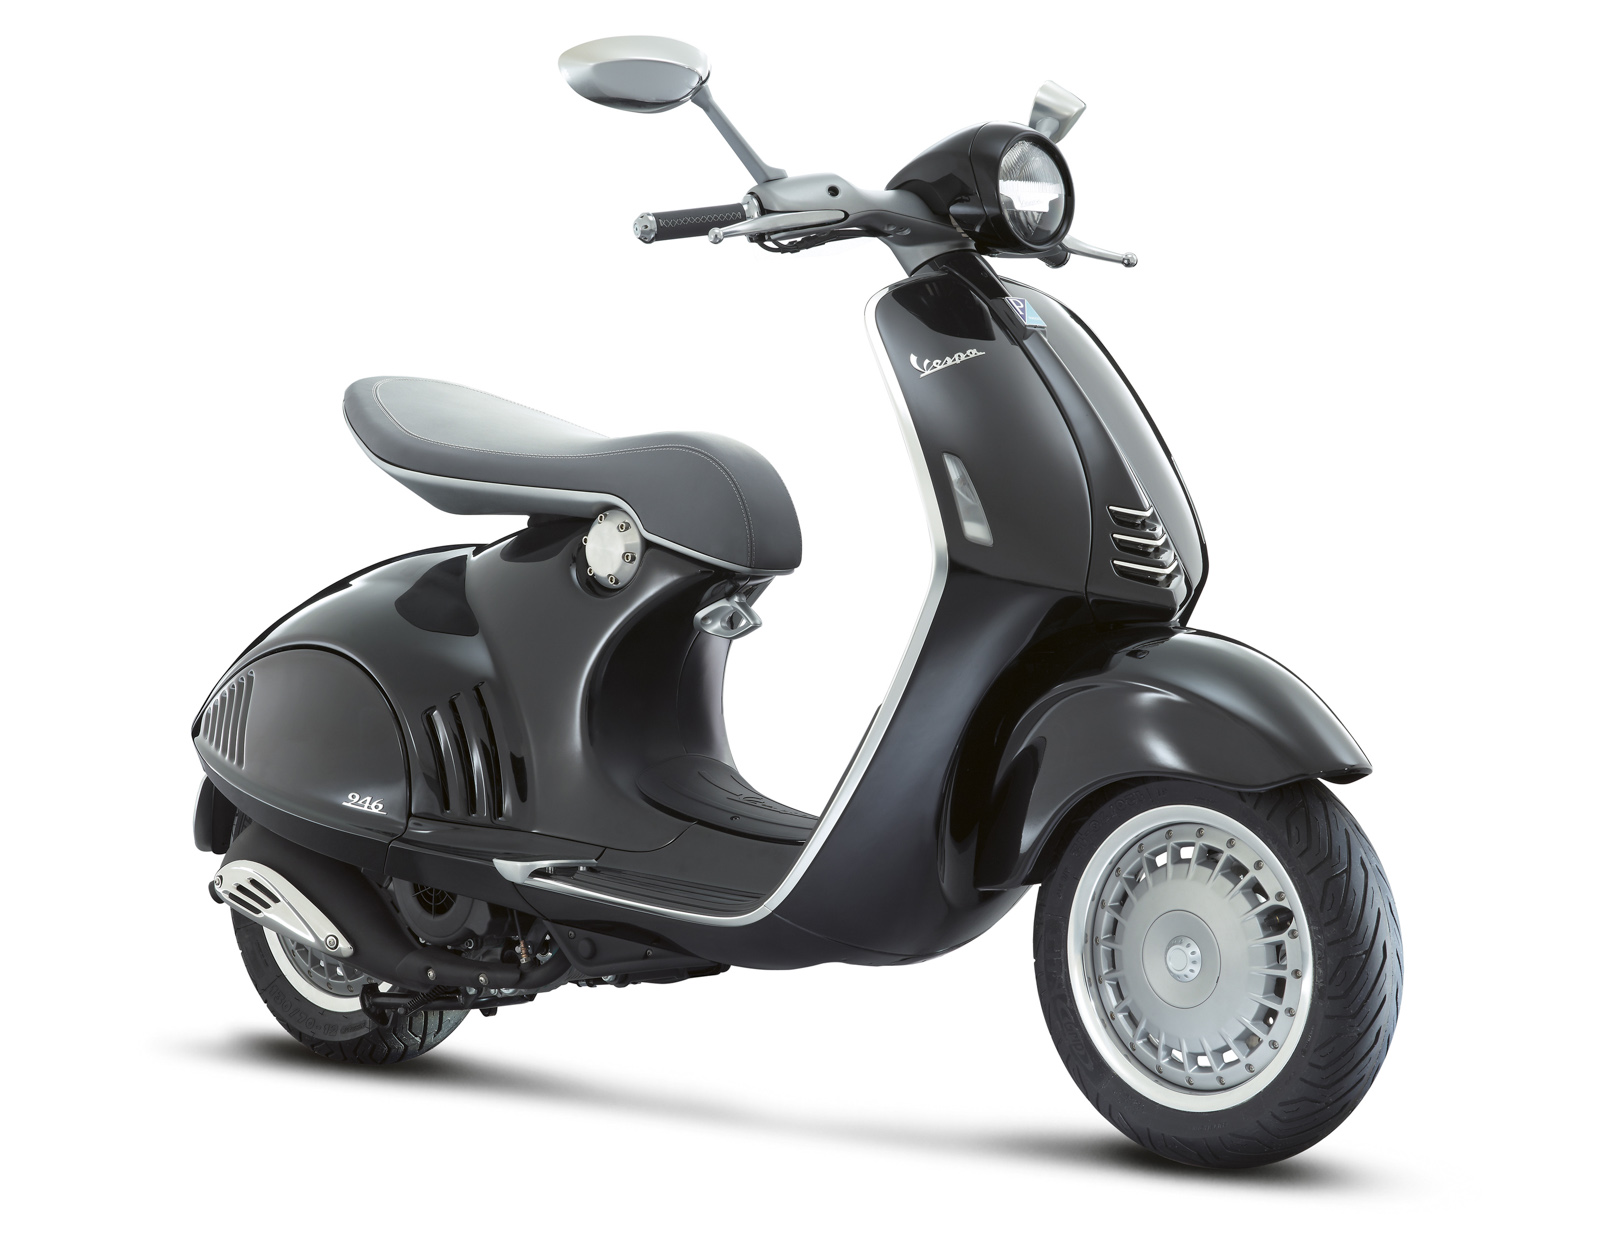 2013 piaggio vespa 946 automatic scooter. Black Bedroom Furniture Sets. Home Design Ideas